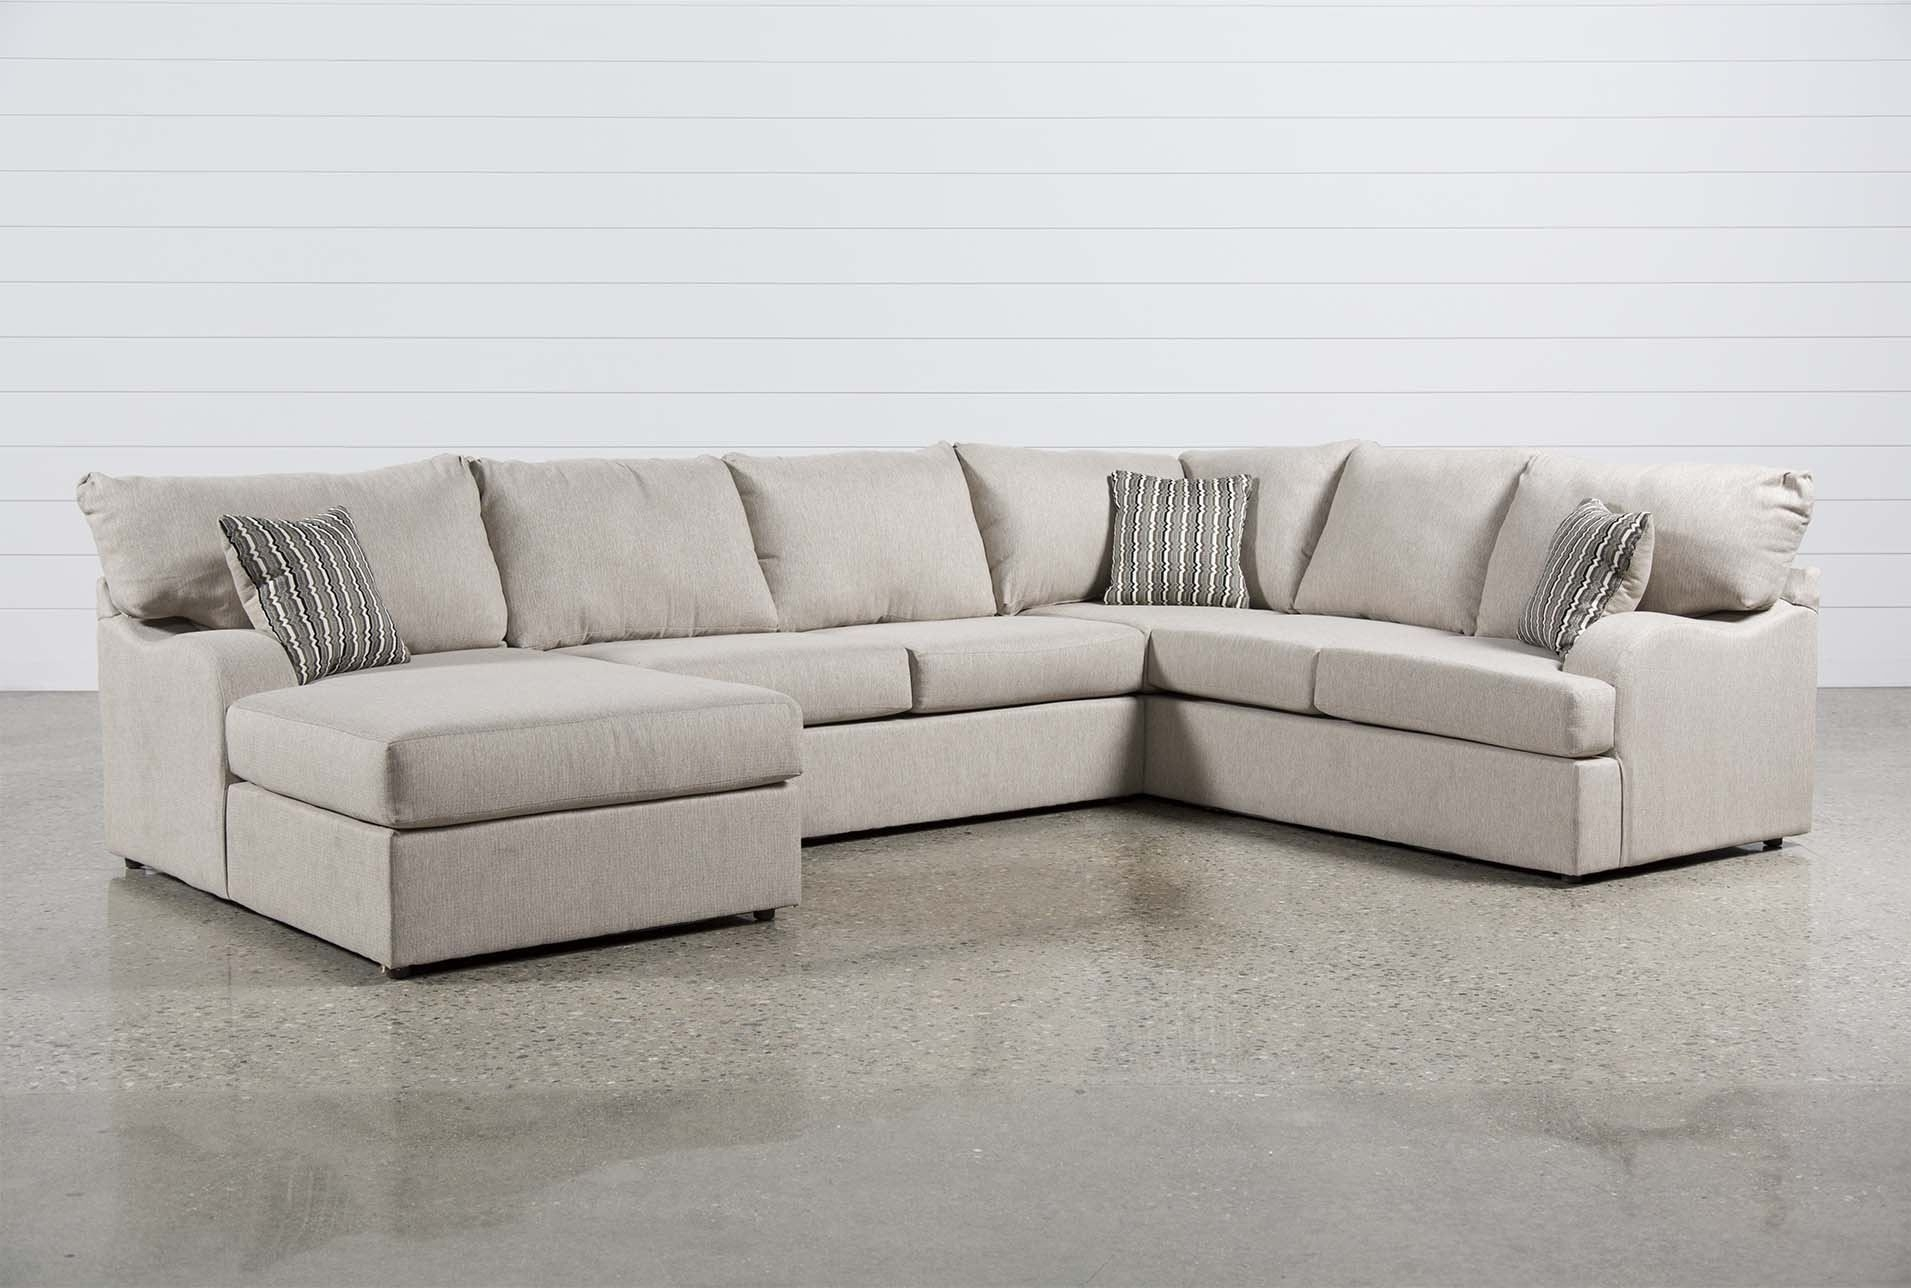 Meyer 3 Piece Sectional W/laf Chaise | Furniture | Pinterest | Beige With Regard To Glamour Ii 3 Piece Sectionals (View 16 of 25)